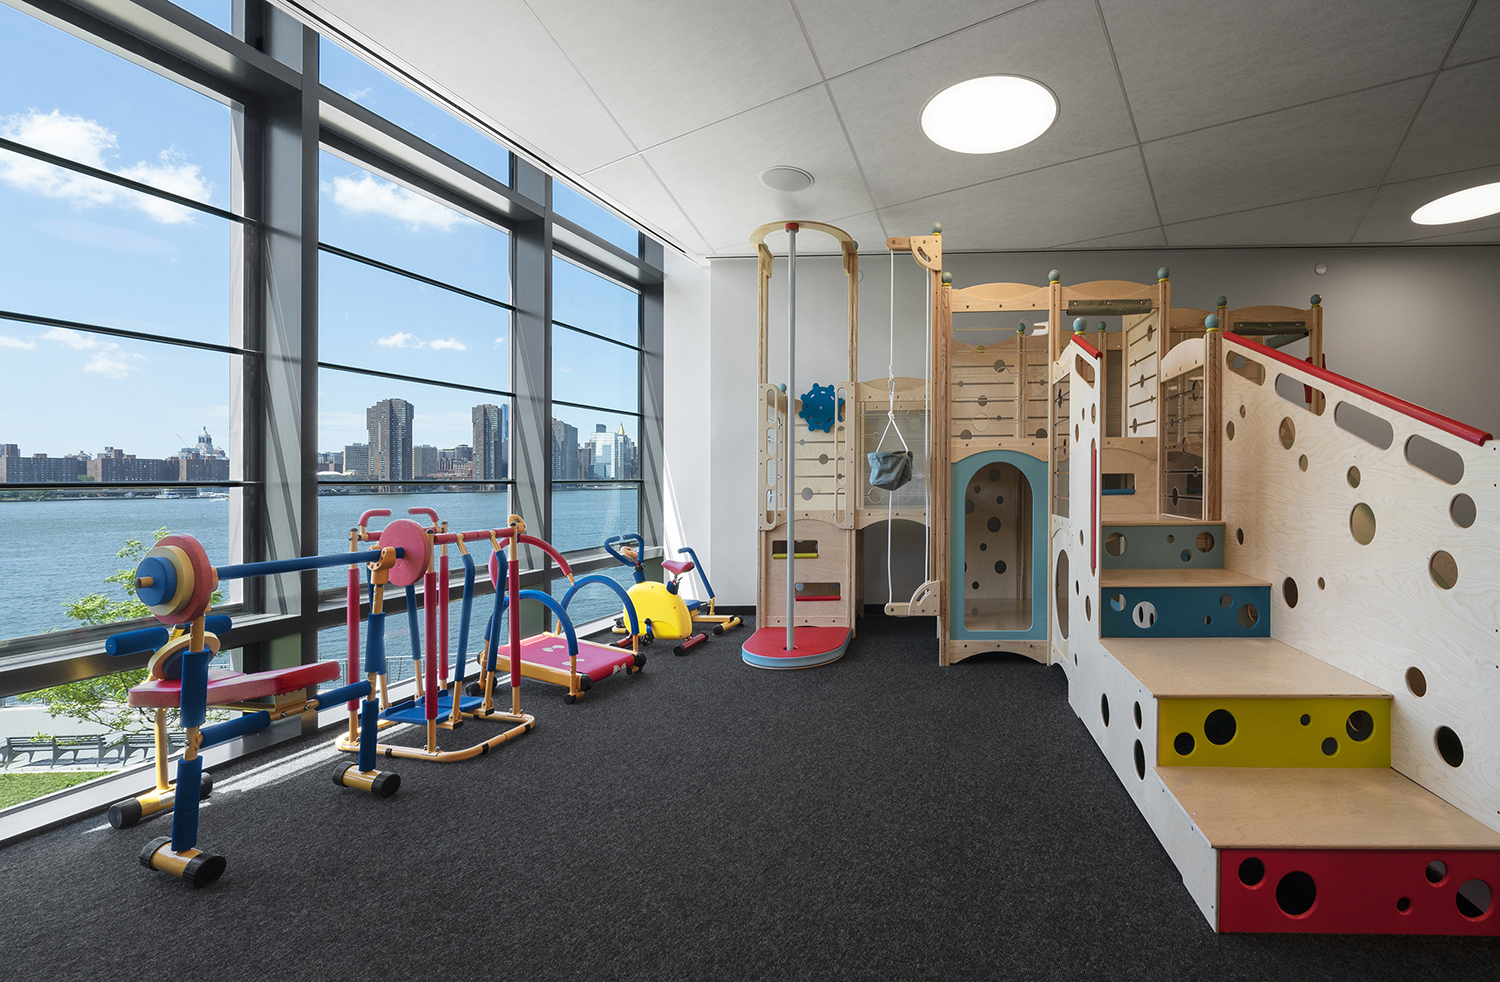 Children's playroom in an apartment building